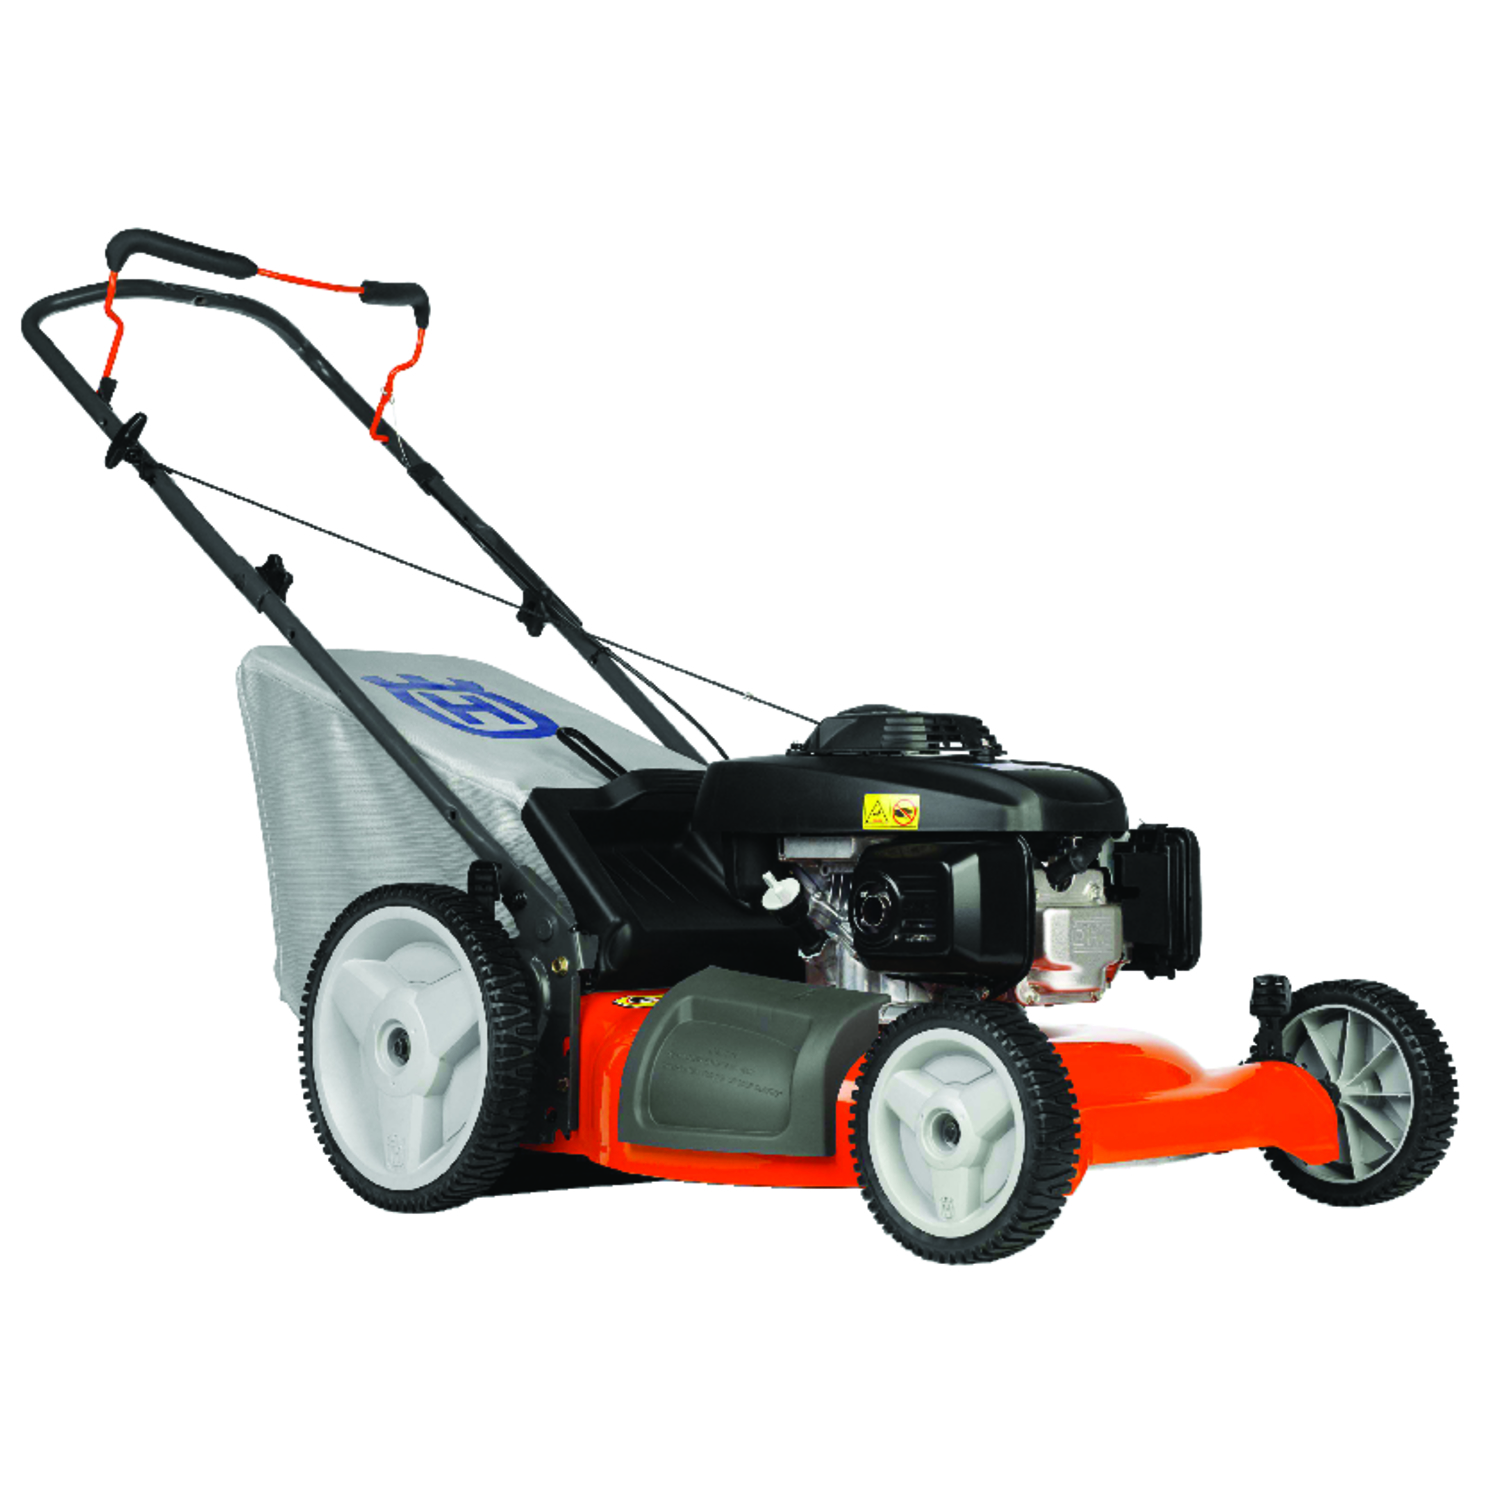 small resolution of husqvarna 7021p 21 in w 160 cc manual push mulching capability lawn mower ace hardware